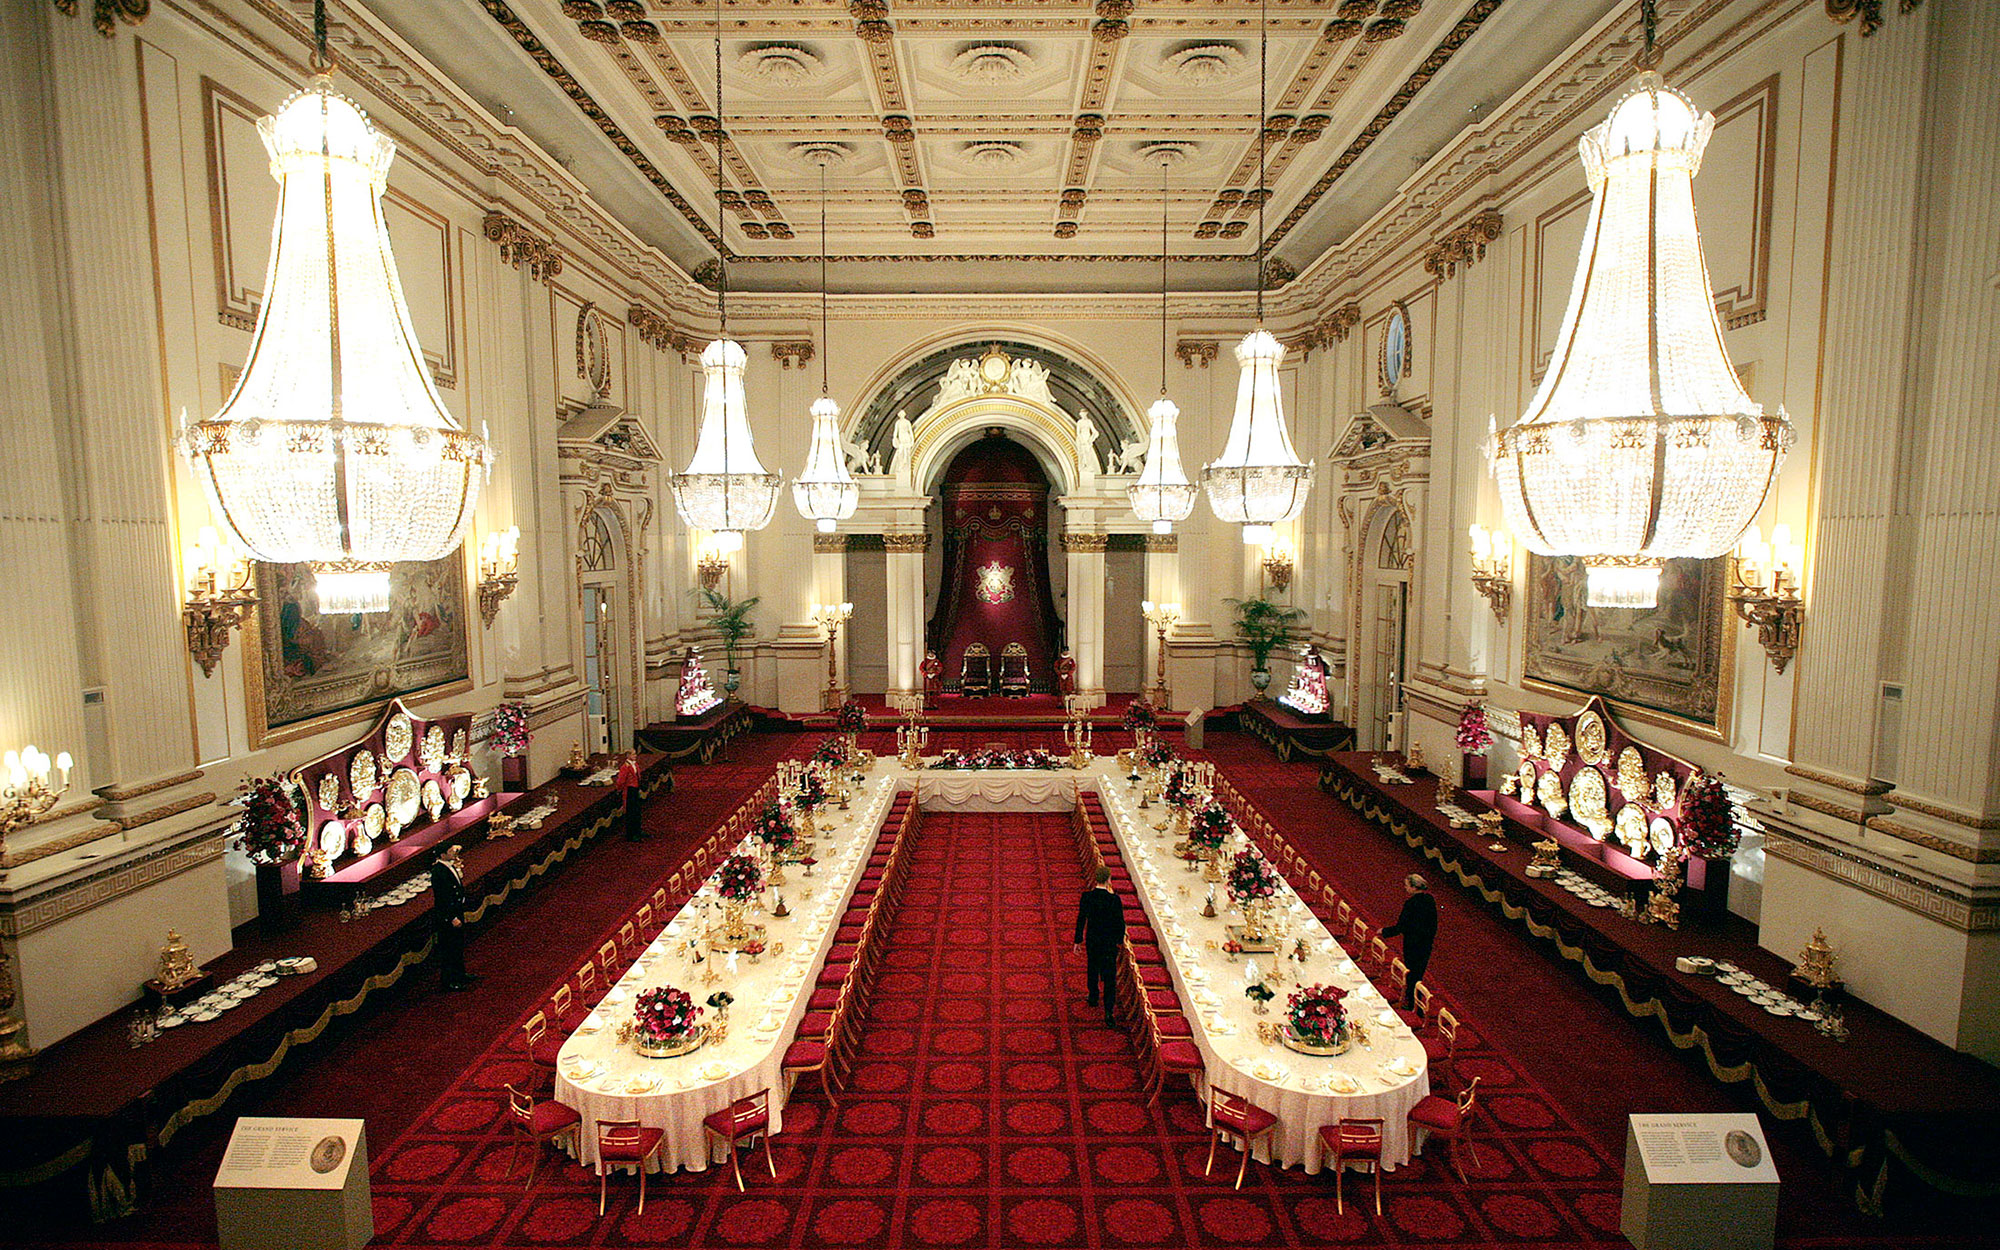 The Ballroom of Buckingham Palace set up for a State Banquet is pictured in London, on July 25, 2008. For the first time ever, visitors to Buckingham Palace will experience the spectacle of the Ballroom set up for a State Banquet. Held in honour of a visi